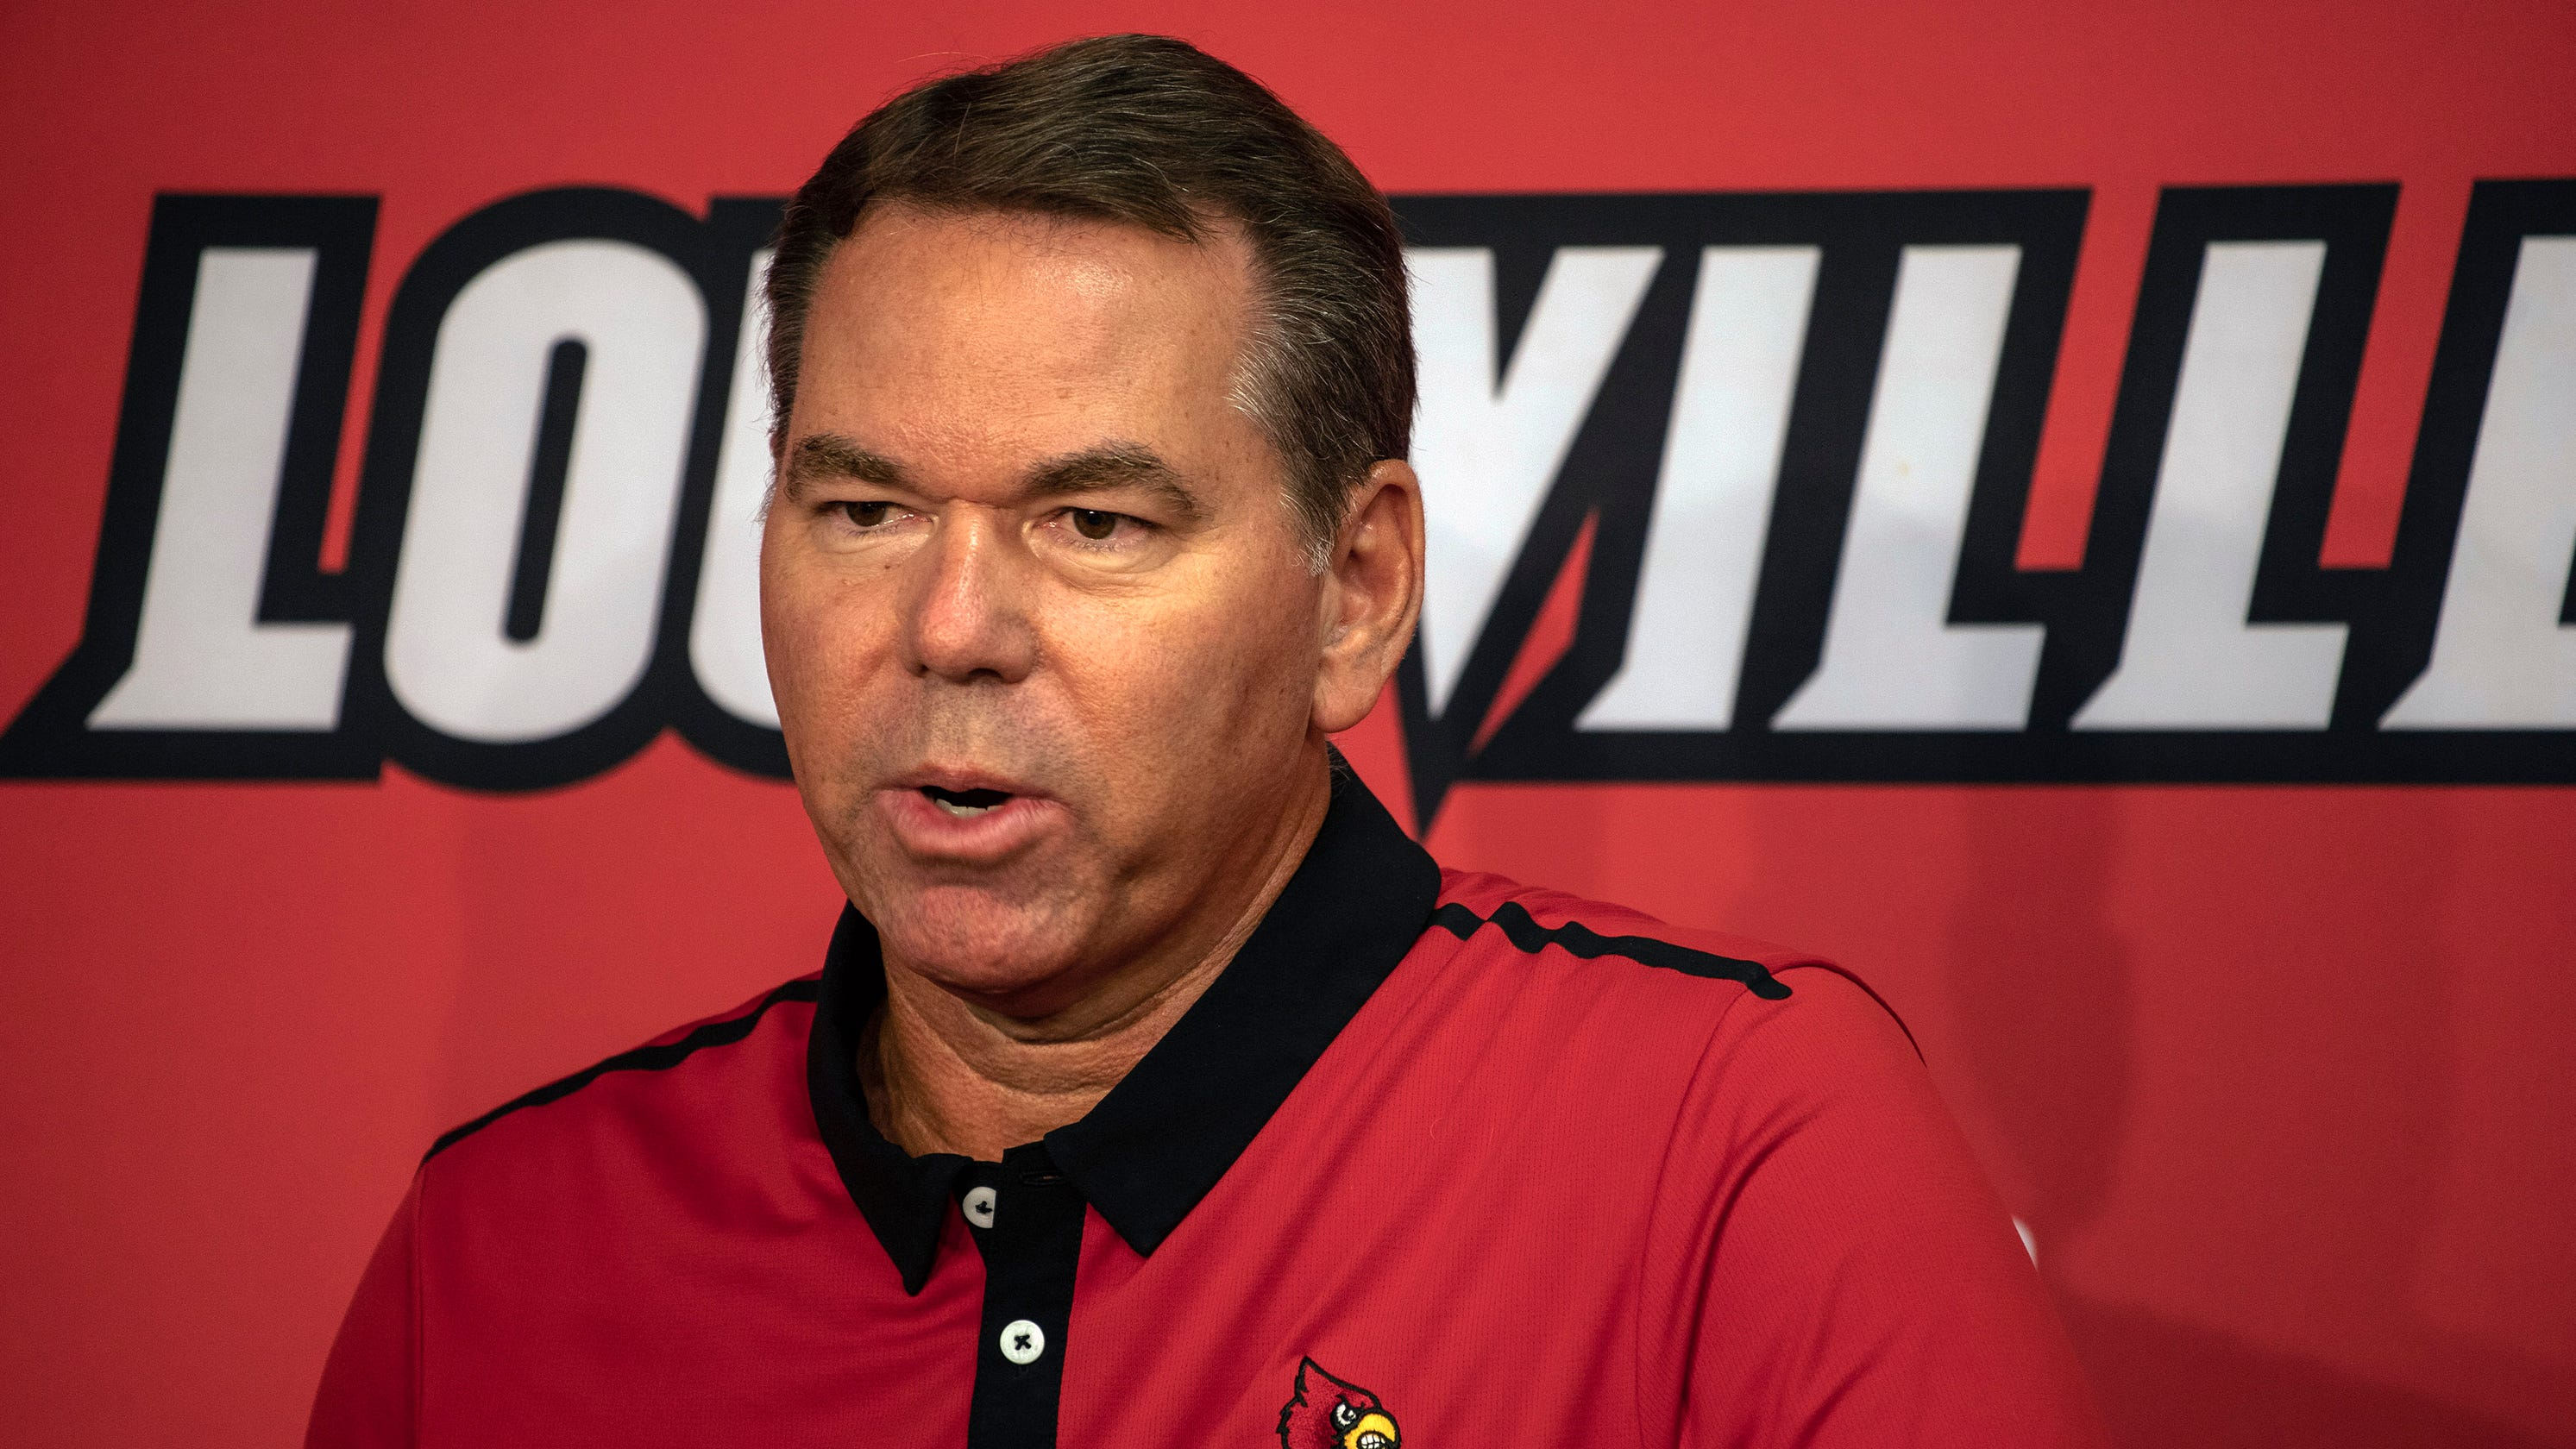 Louisville's Vince Tyra trades short-term pain for long-term leverage